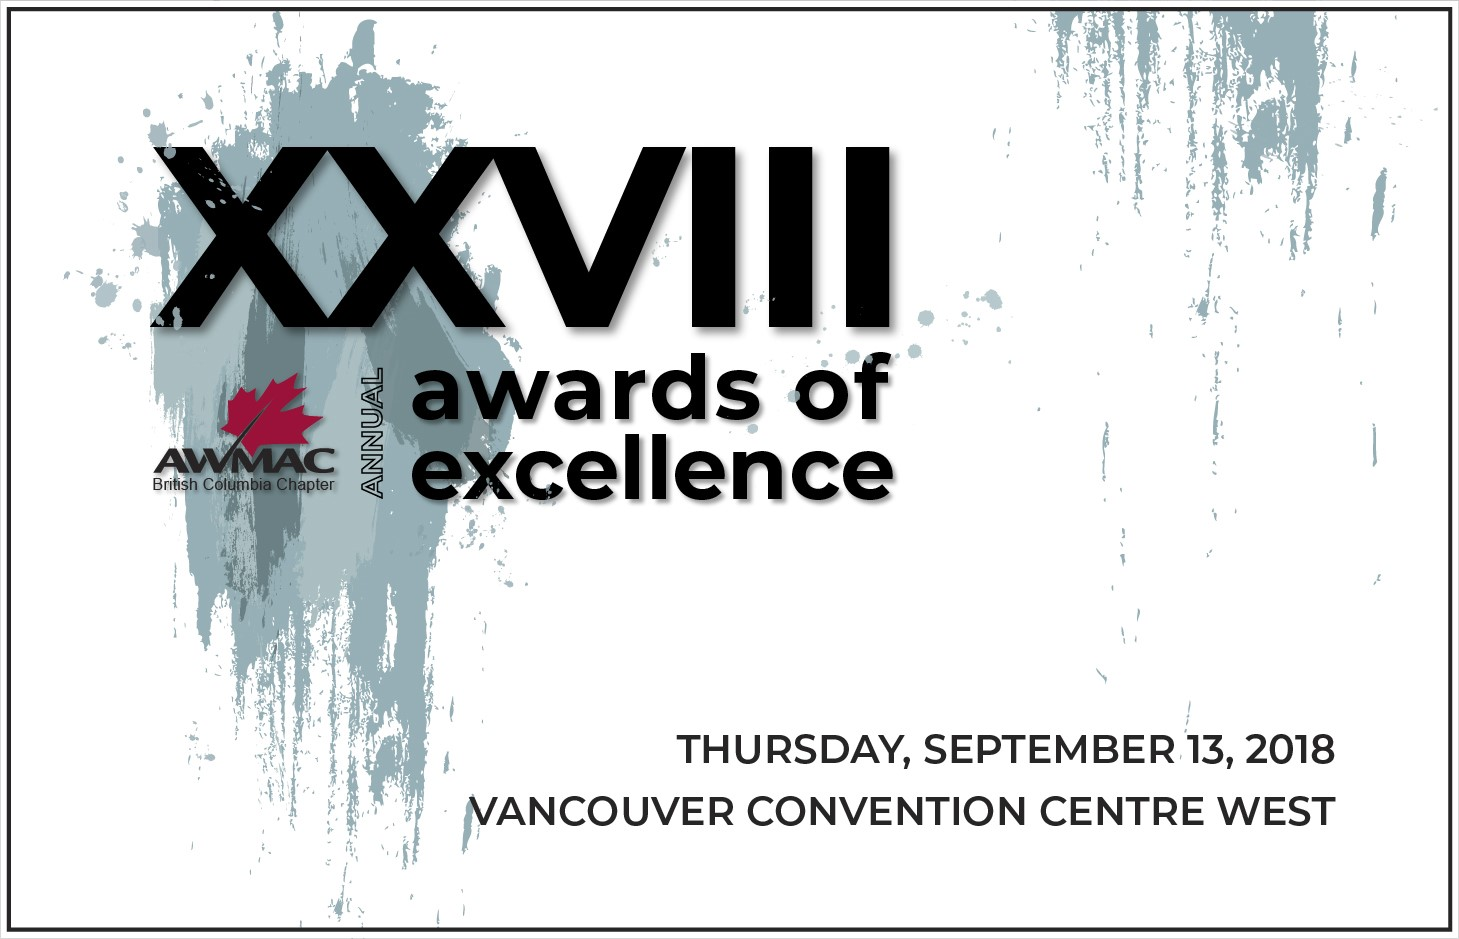 AWMAC 2018 Awards of Excellence